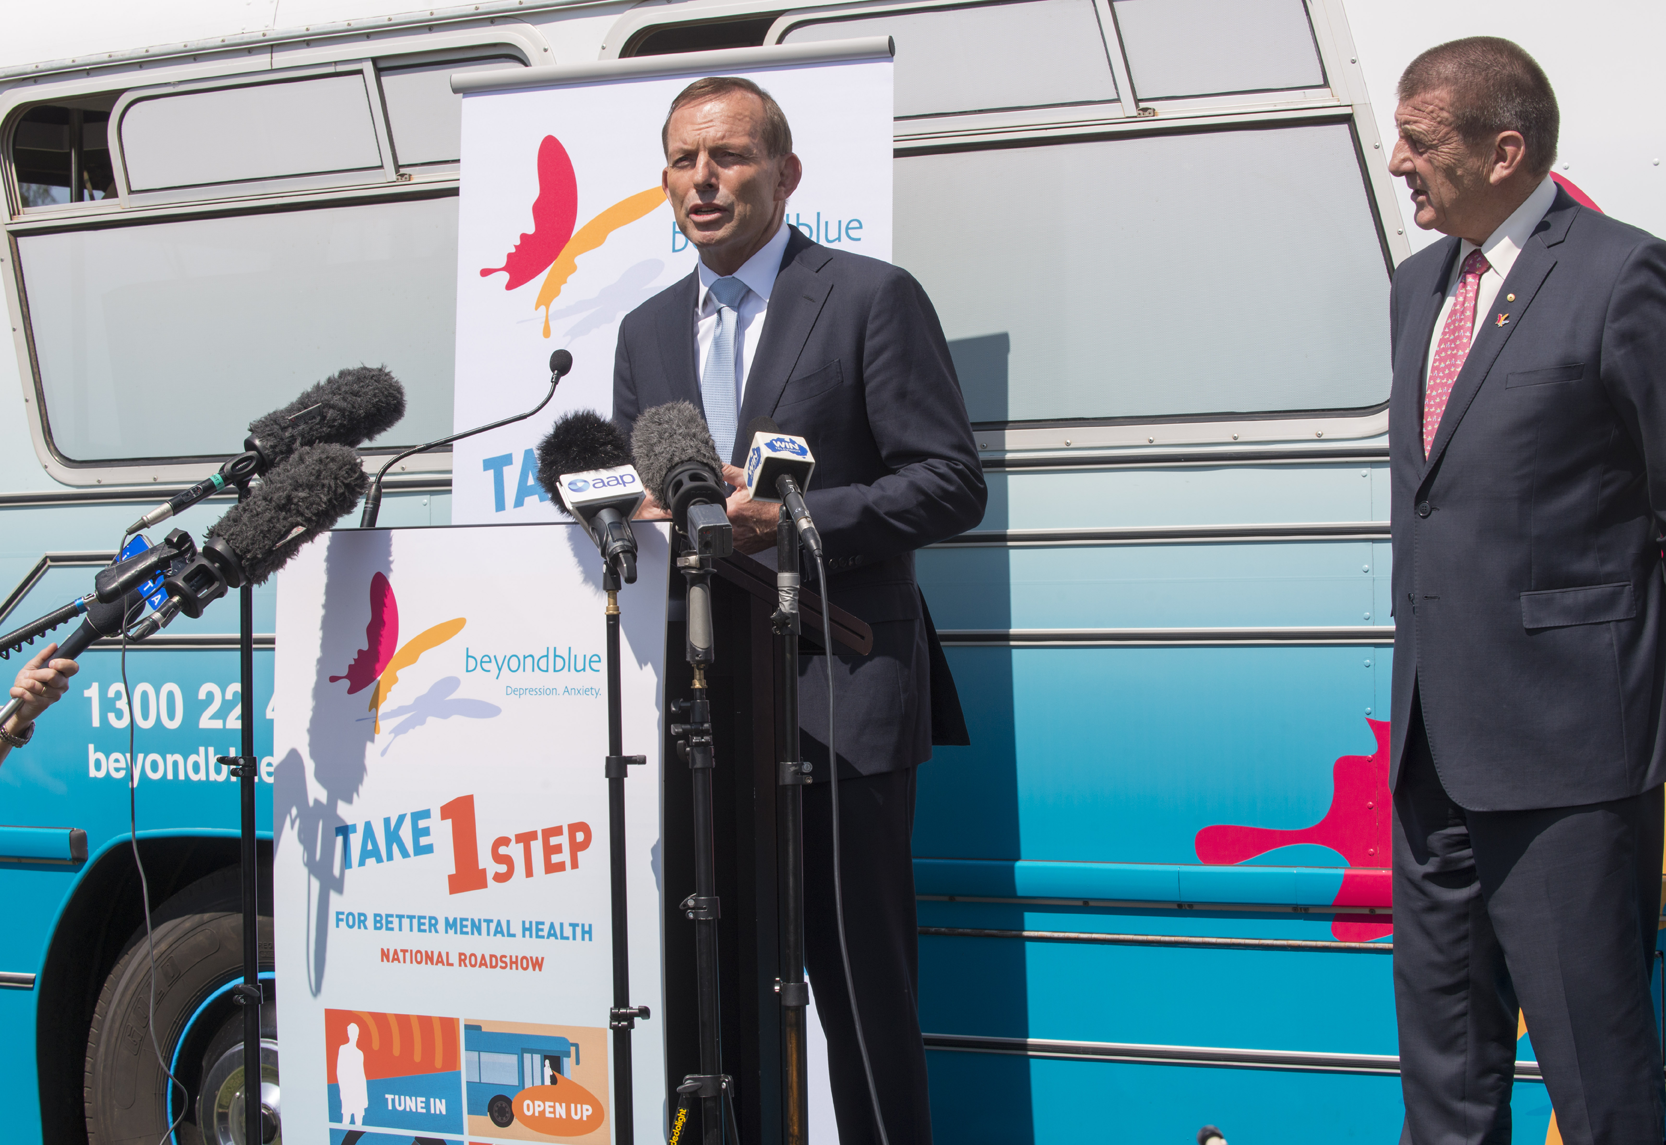 Prime Minister Tony Abbott officially launches the Roadshow.